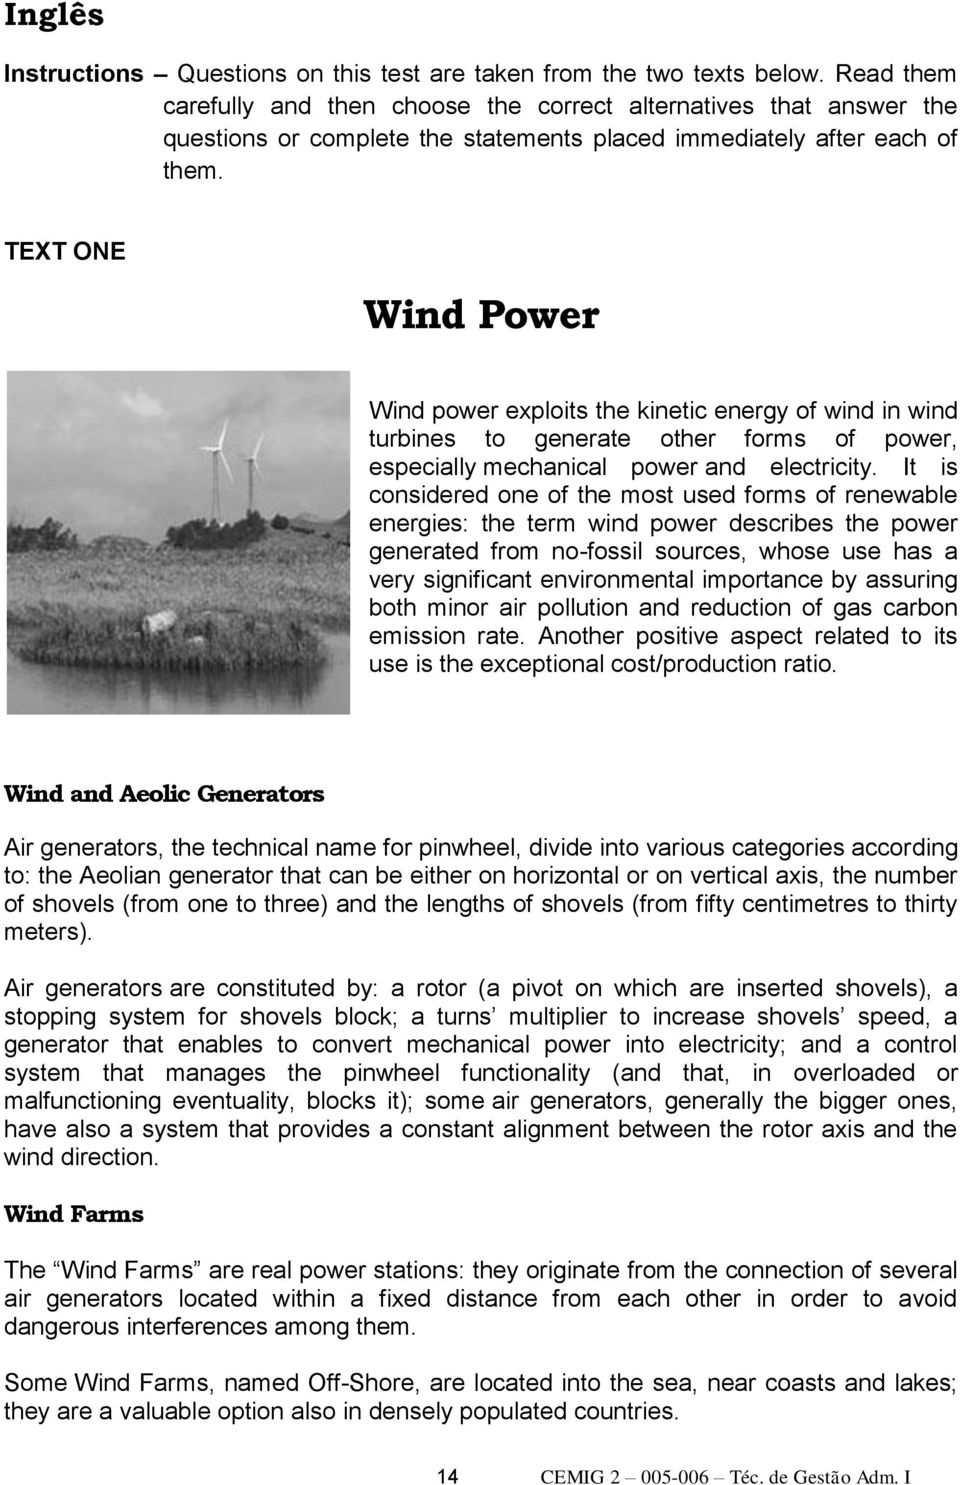 TEXT ONE Wind Power Wind power exploits the kinetic energy of wind in wind turbines to generate other forms of power, especially mechanical power and electricity.